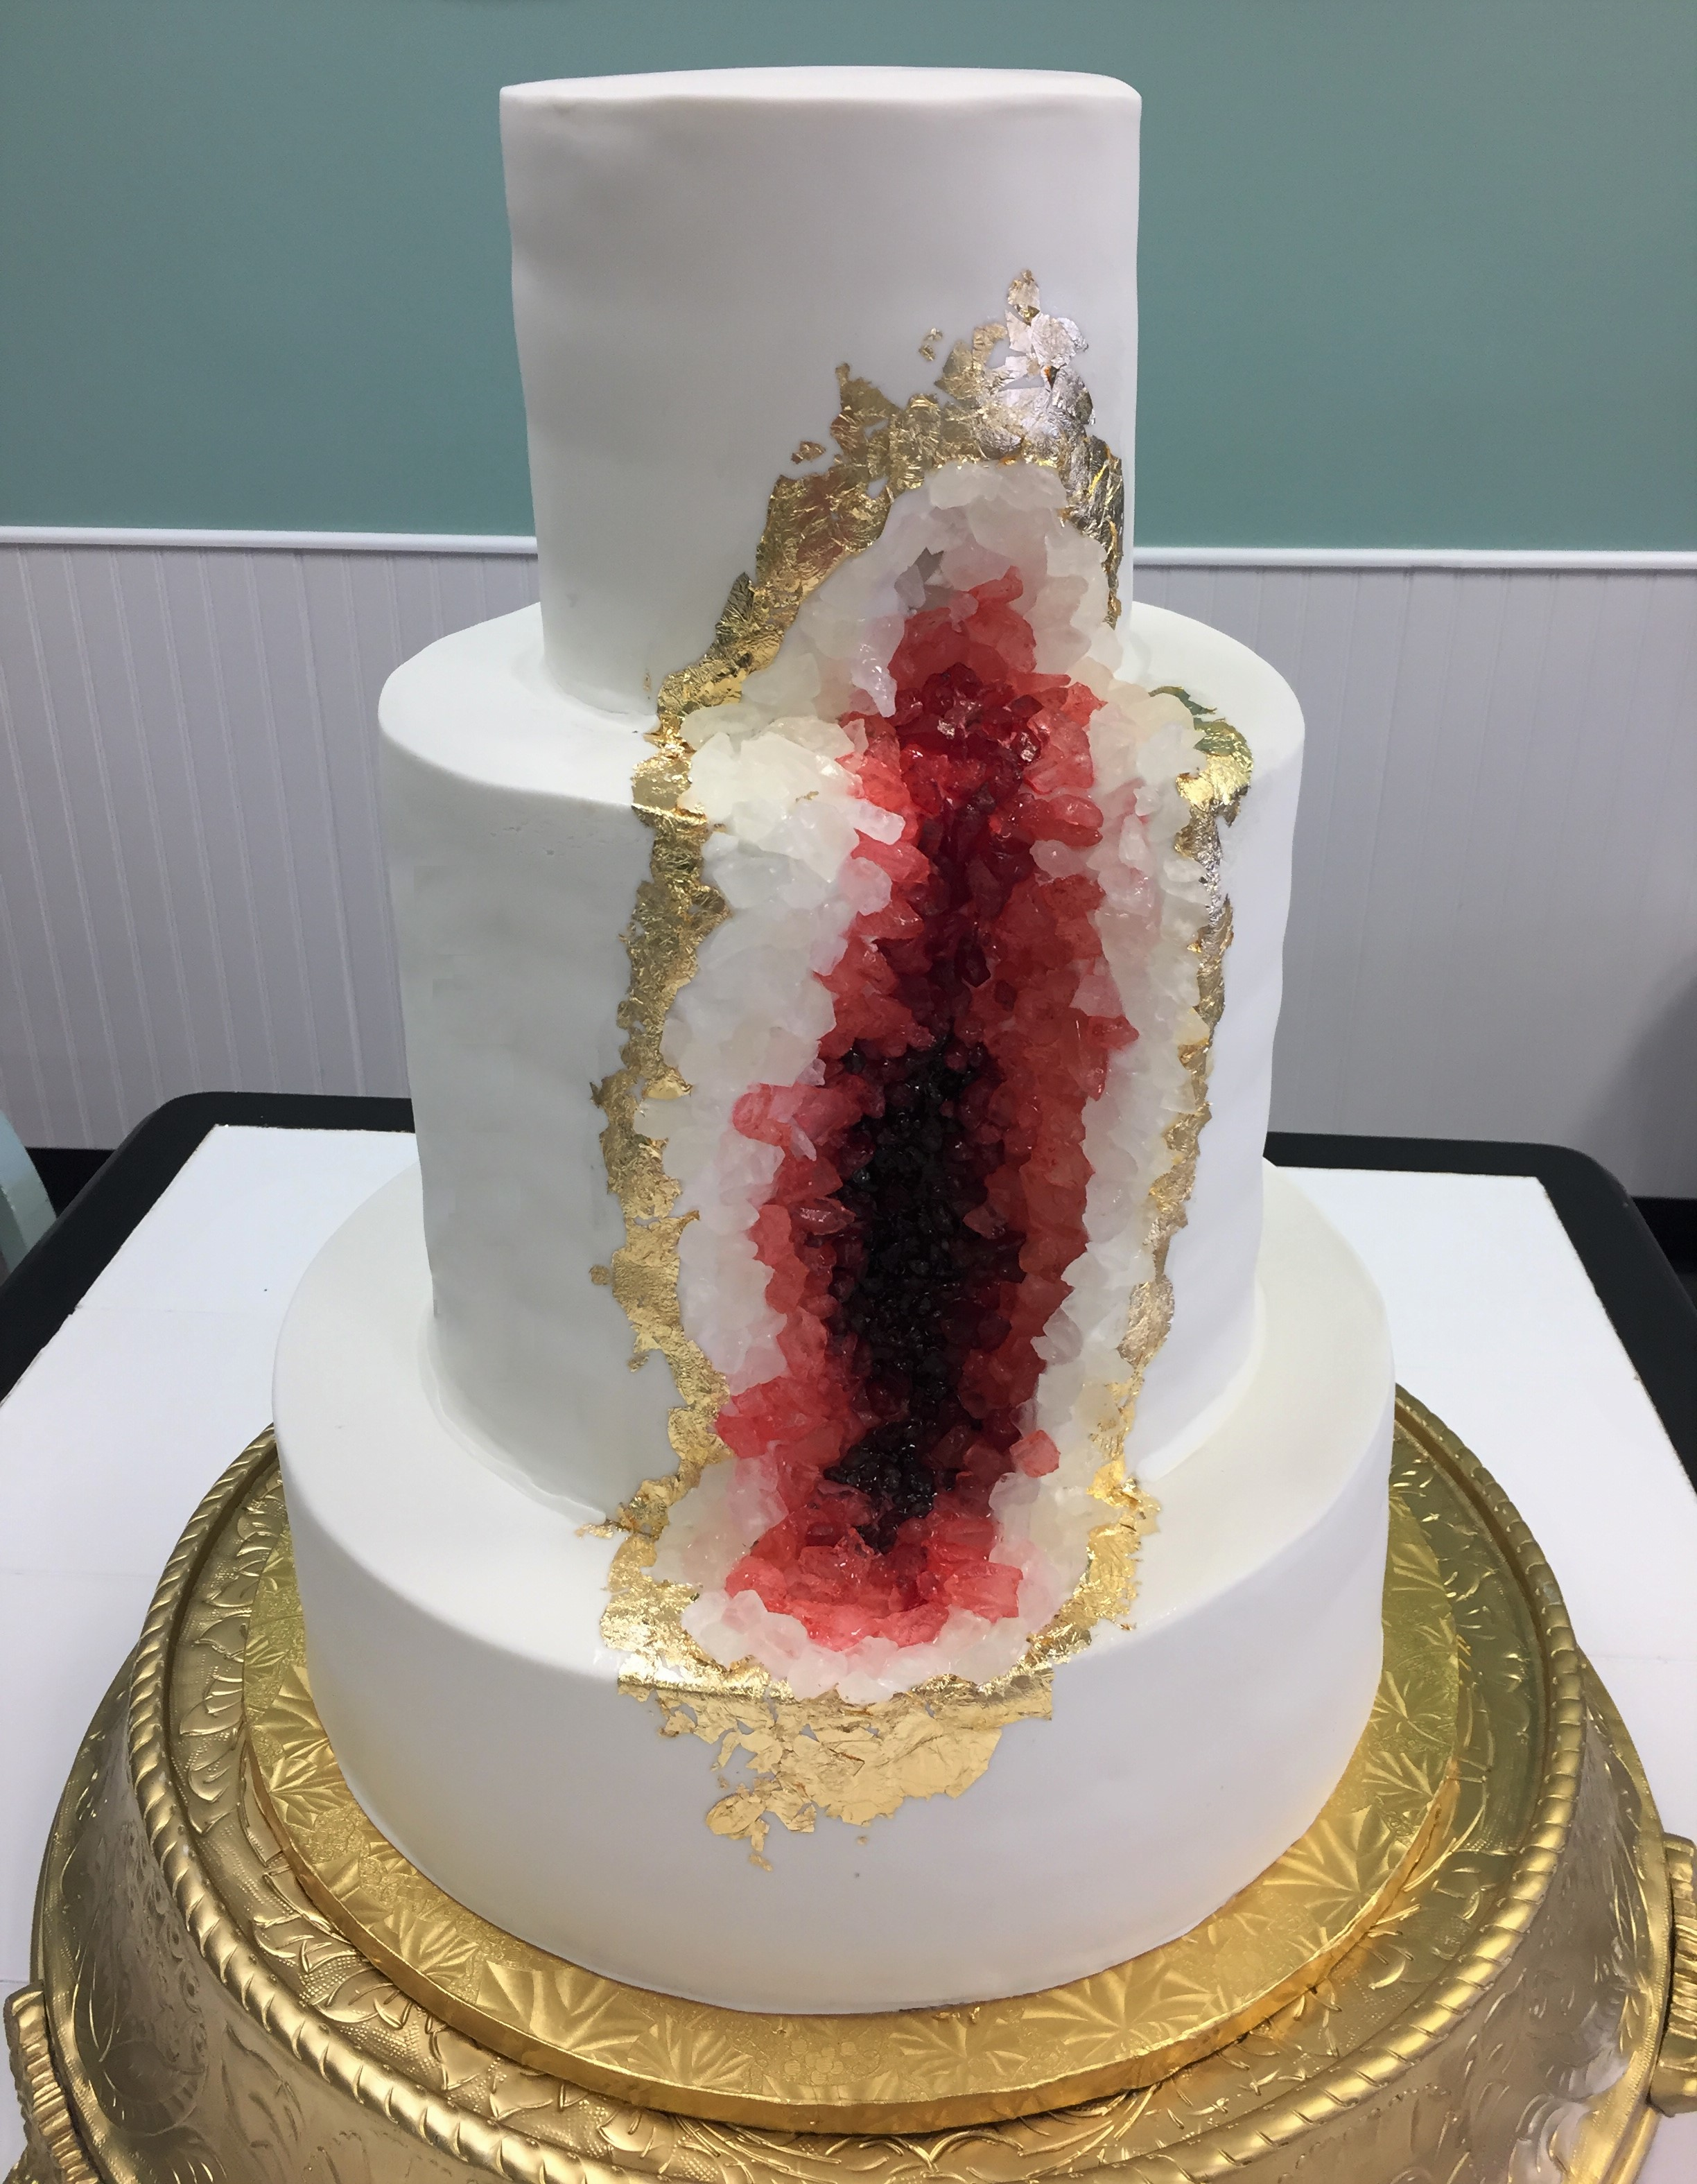 cranberry geode wedding cake.jpg